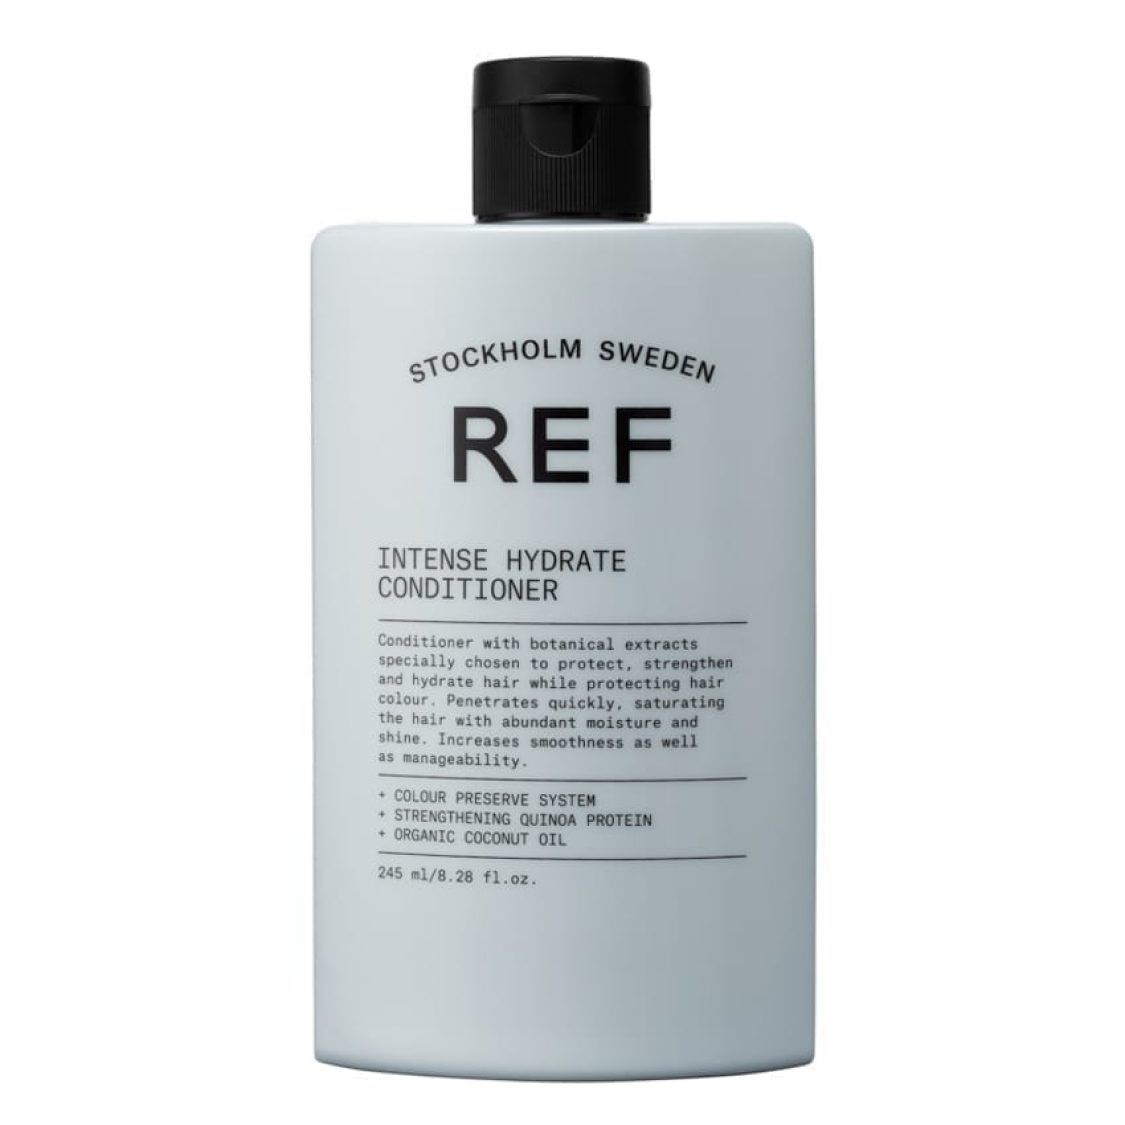 REF - Intense Hydrate Conditioner 245ml